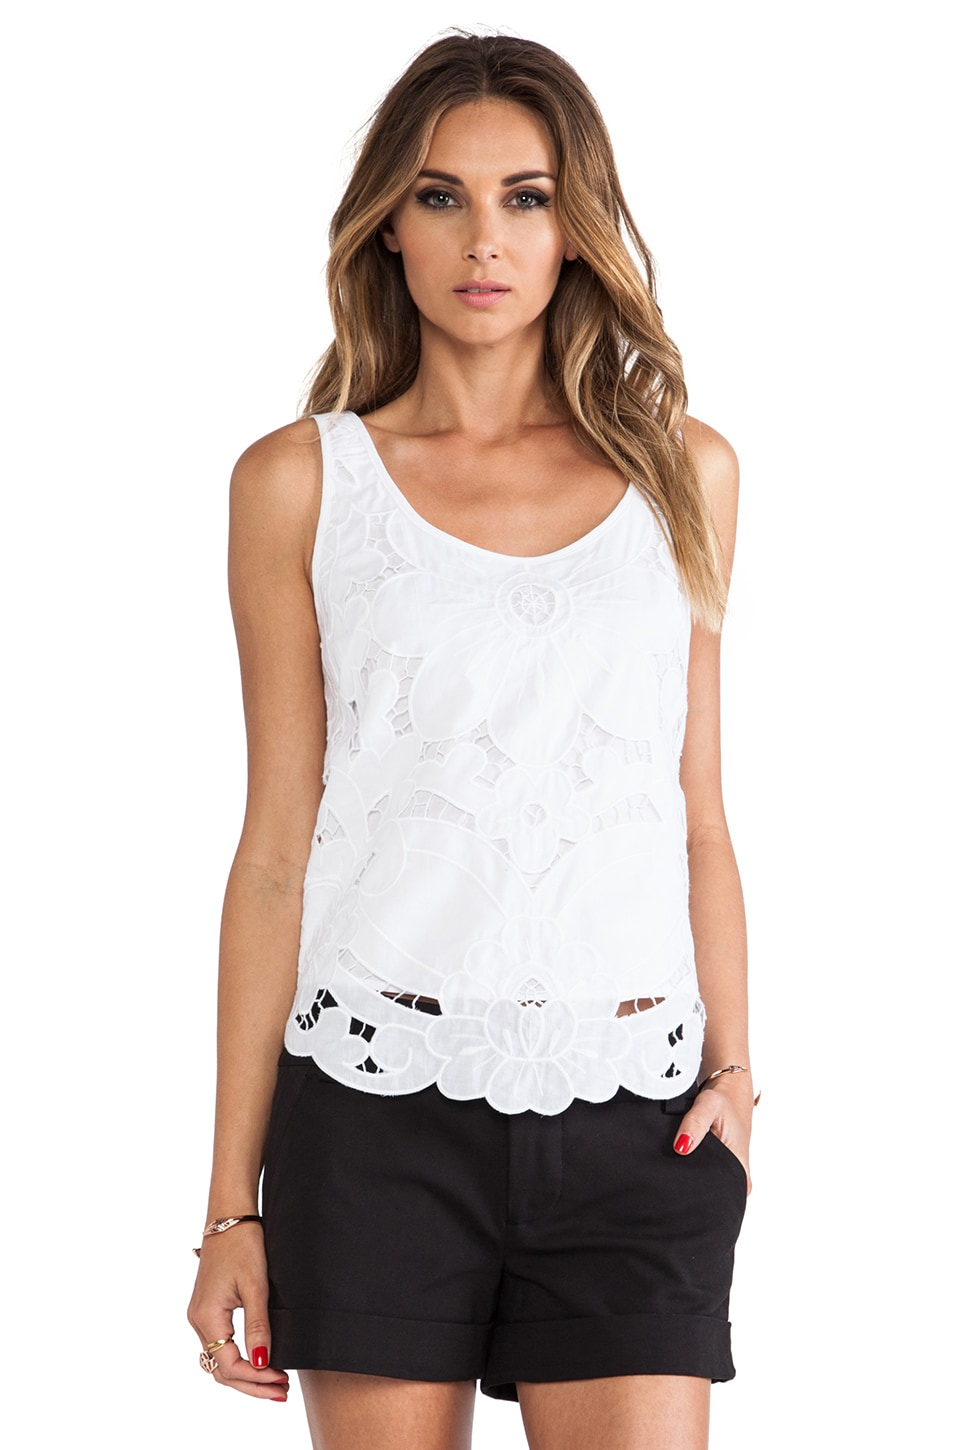 MILLY Embroidery Tank Top in White